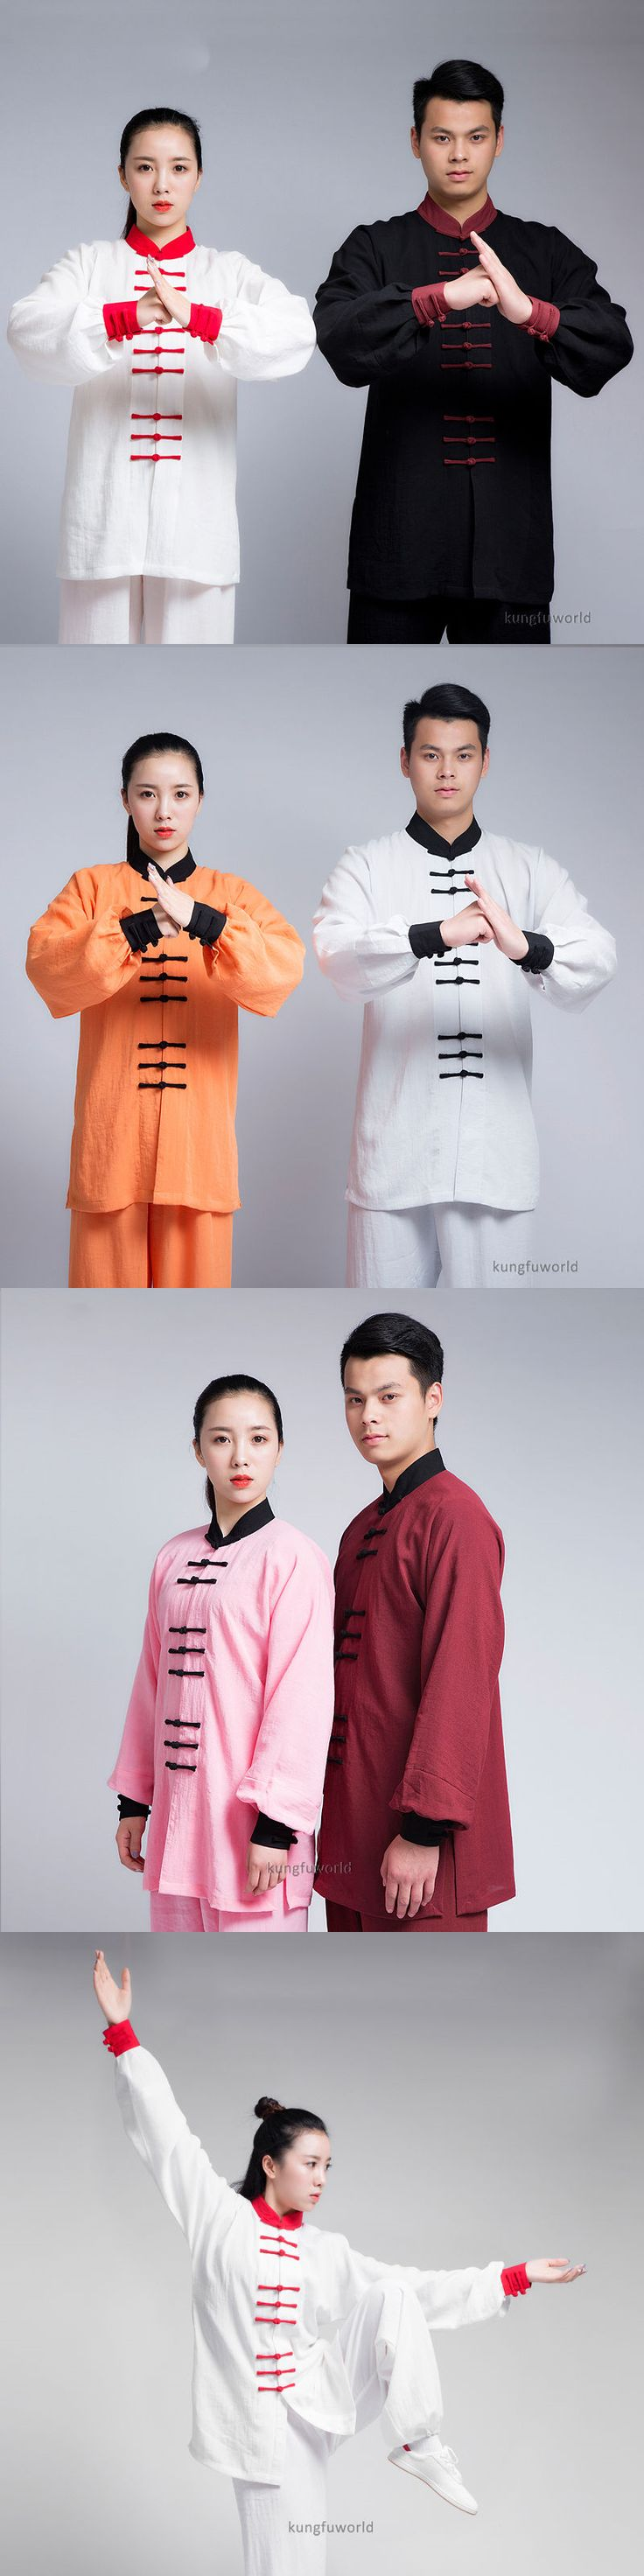 Robes 179773: High Quality Kung Fu Tai Chi Uniform Martial Arts Wing Chun Wushu Training Suit -> BUY IT NOW ONLY: $88 on eBay!